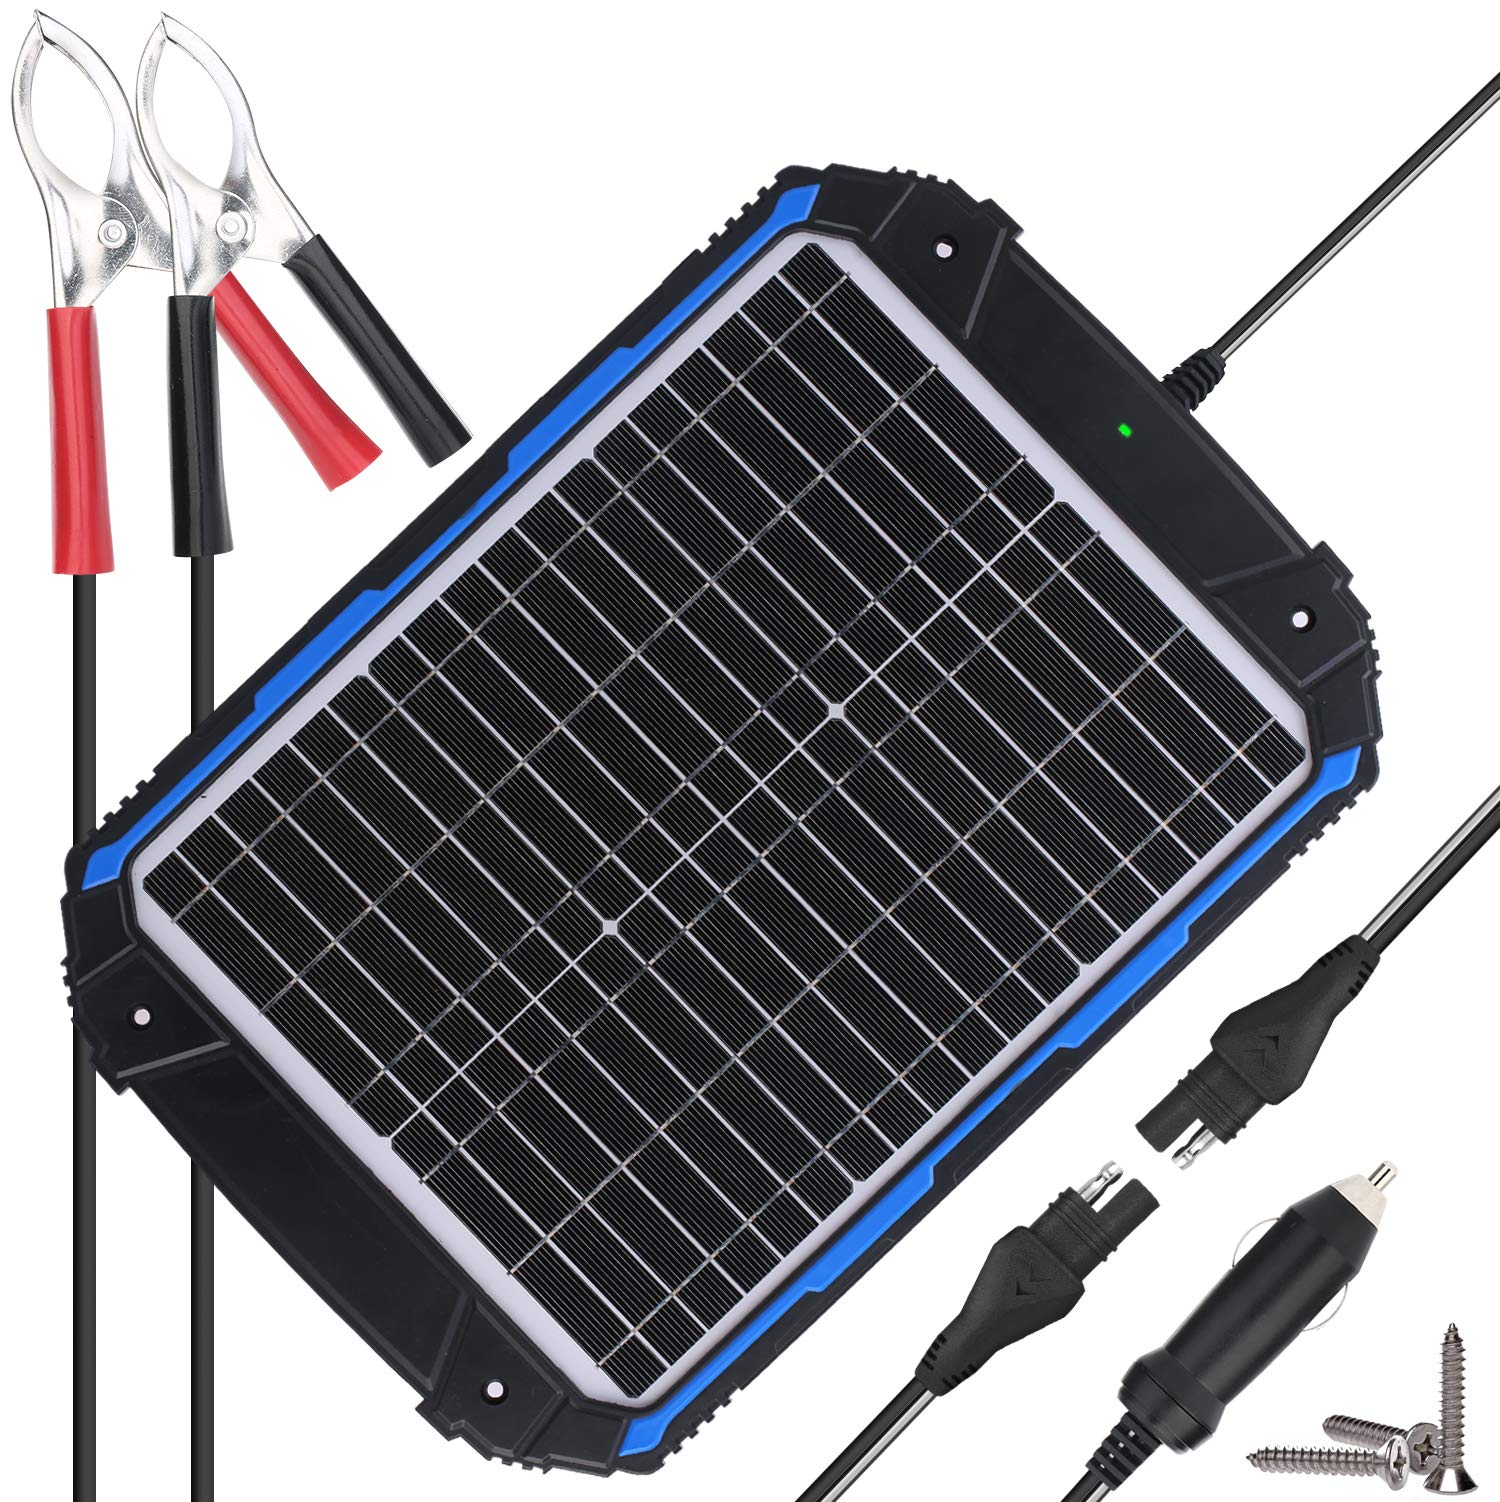 SUNER POWER Upgraded 12V Waterproof Solar Battery Charger & Maintainer Pro - Built-in Intelligent MPPT Charge Controller - 20W Solar Panel Trickle Charging Kit for Car, Marine, Motorcycle, RV, etc by SUNER POWER